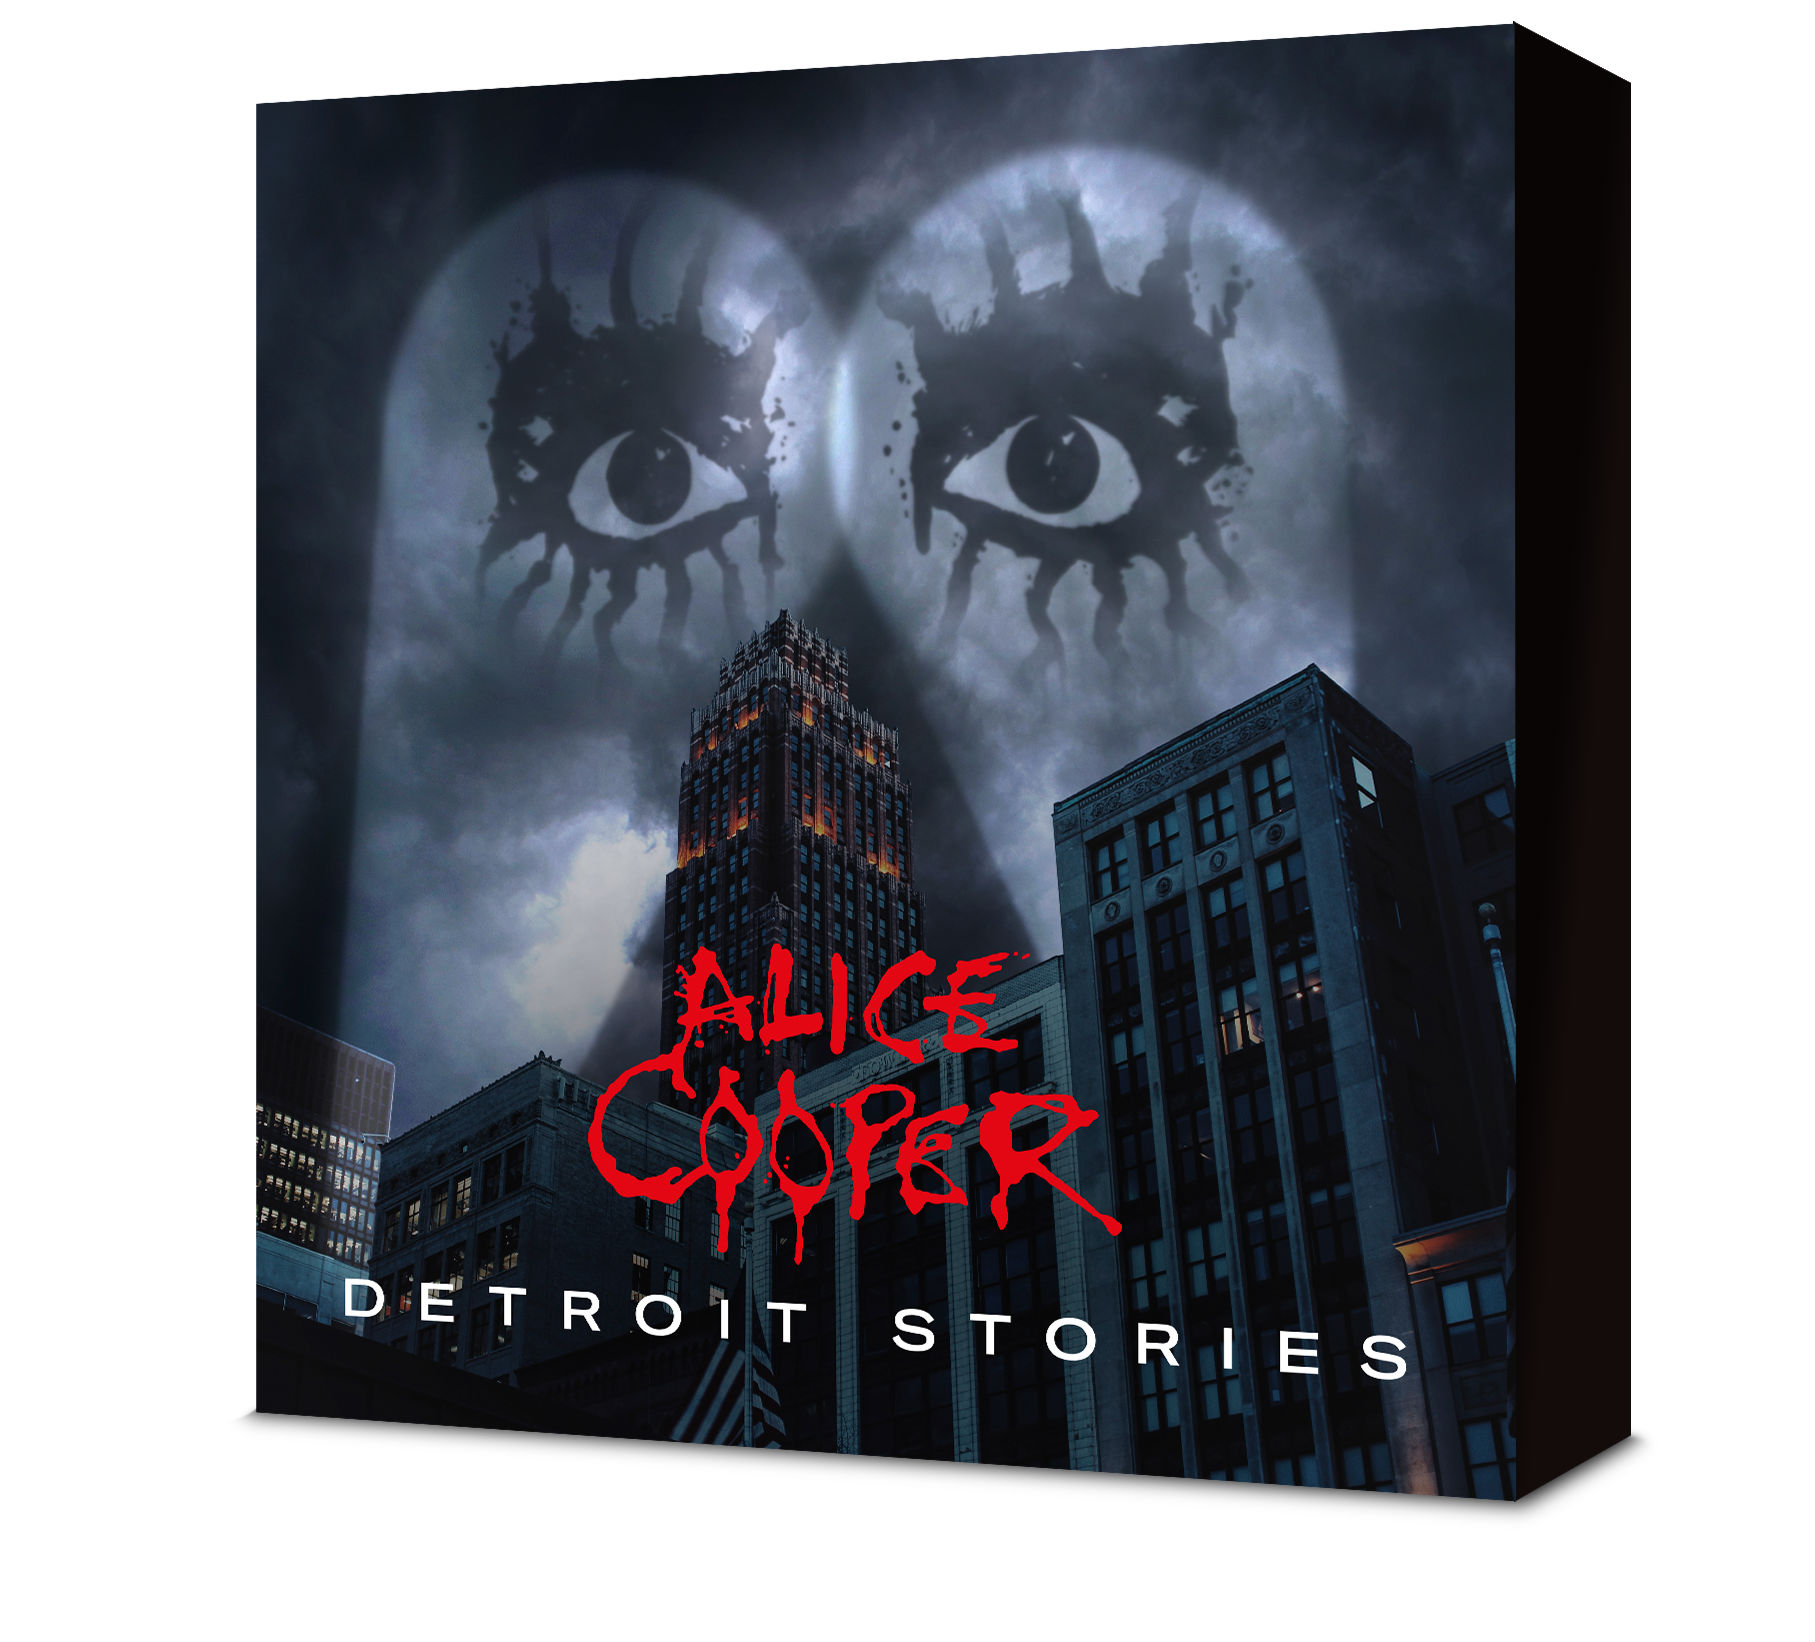 Alice Cooper announces new album 'Detroit Stories' and teases first track 2